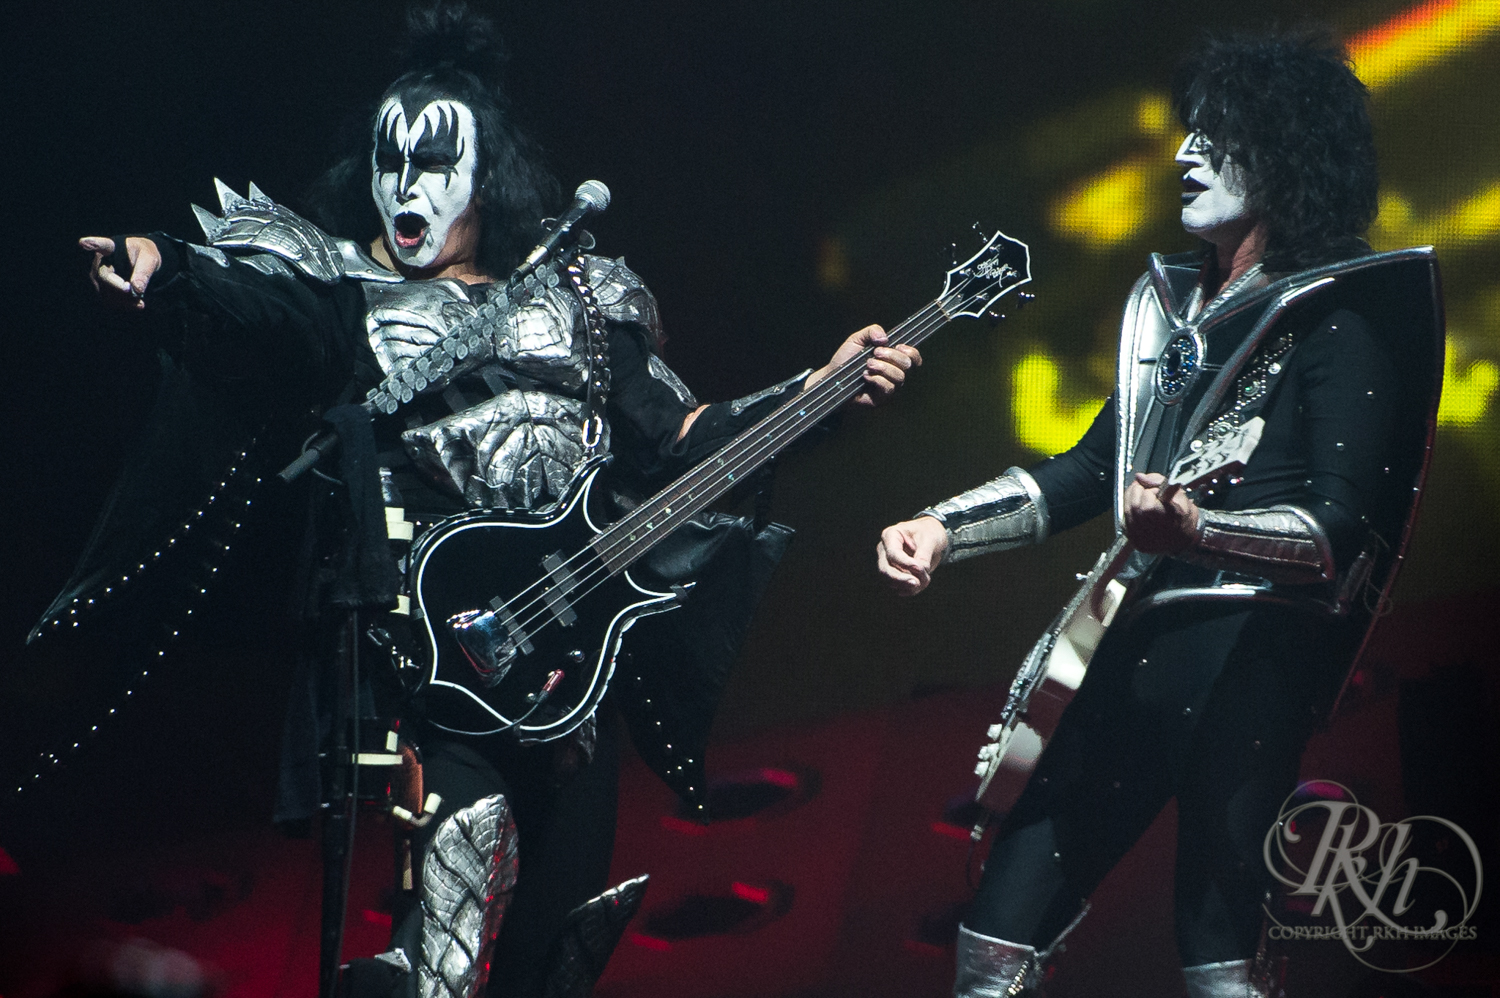 Kiss - End of the Road Tour - Target Center - Minneapolis - Concert Photography - RKH Images  (6 of 12).jpg